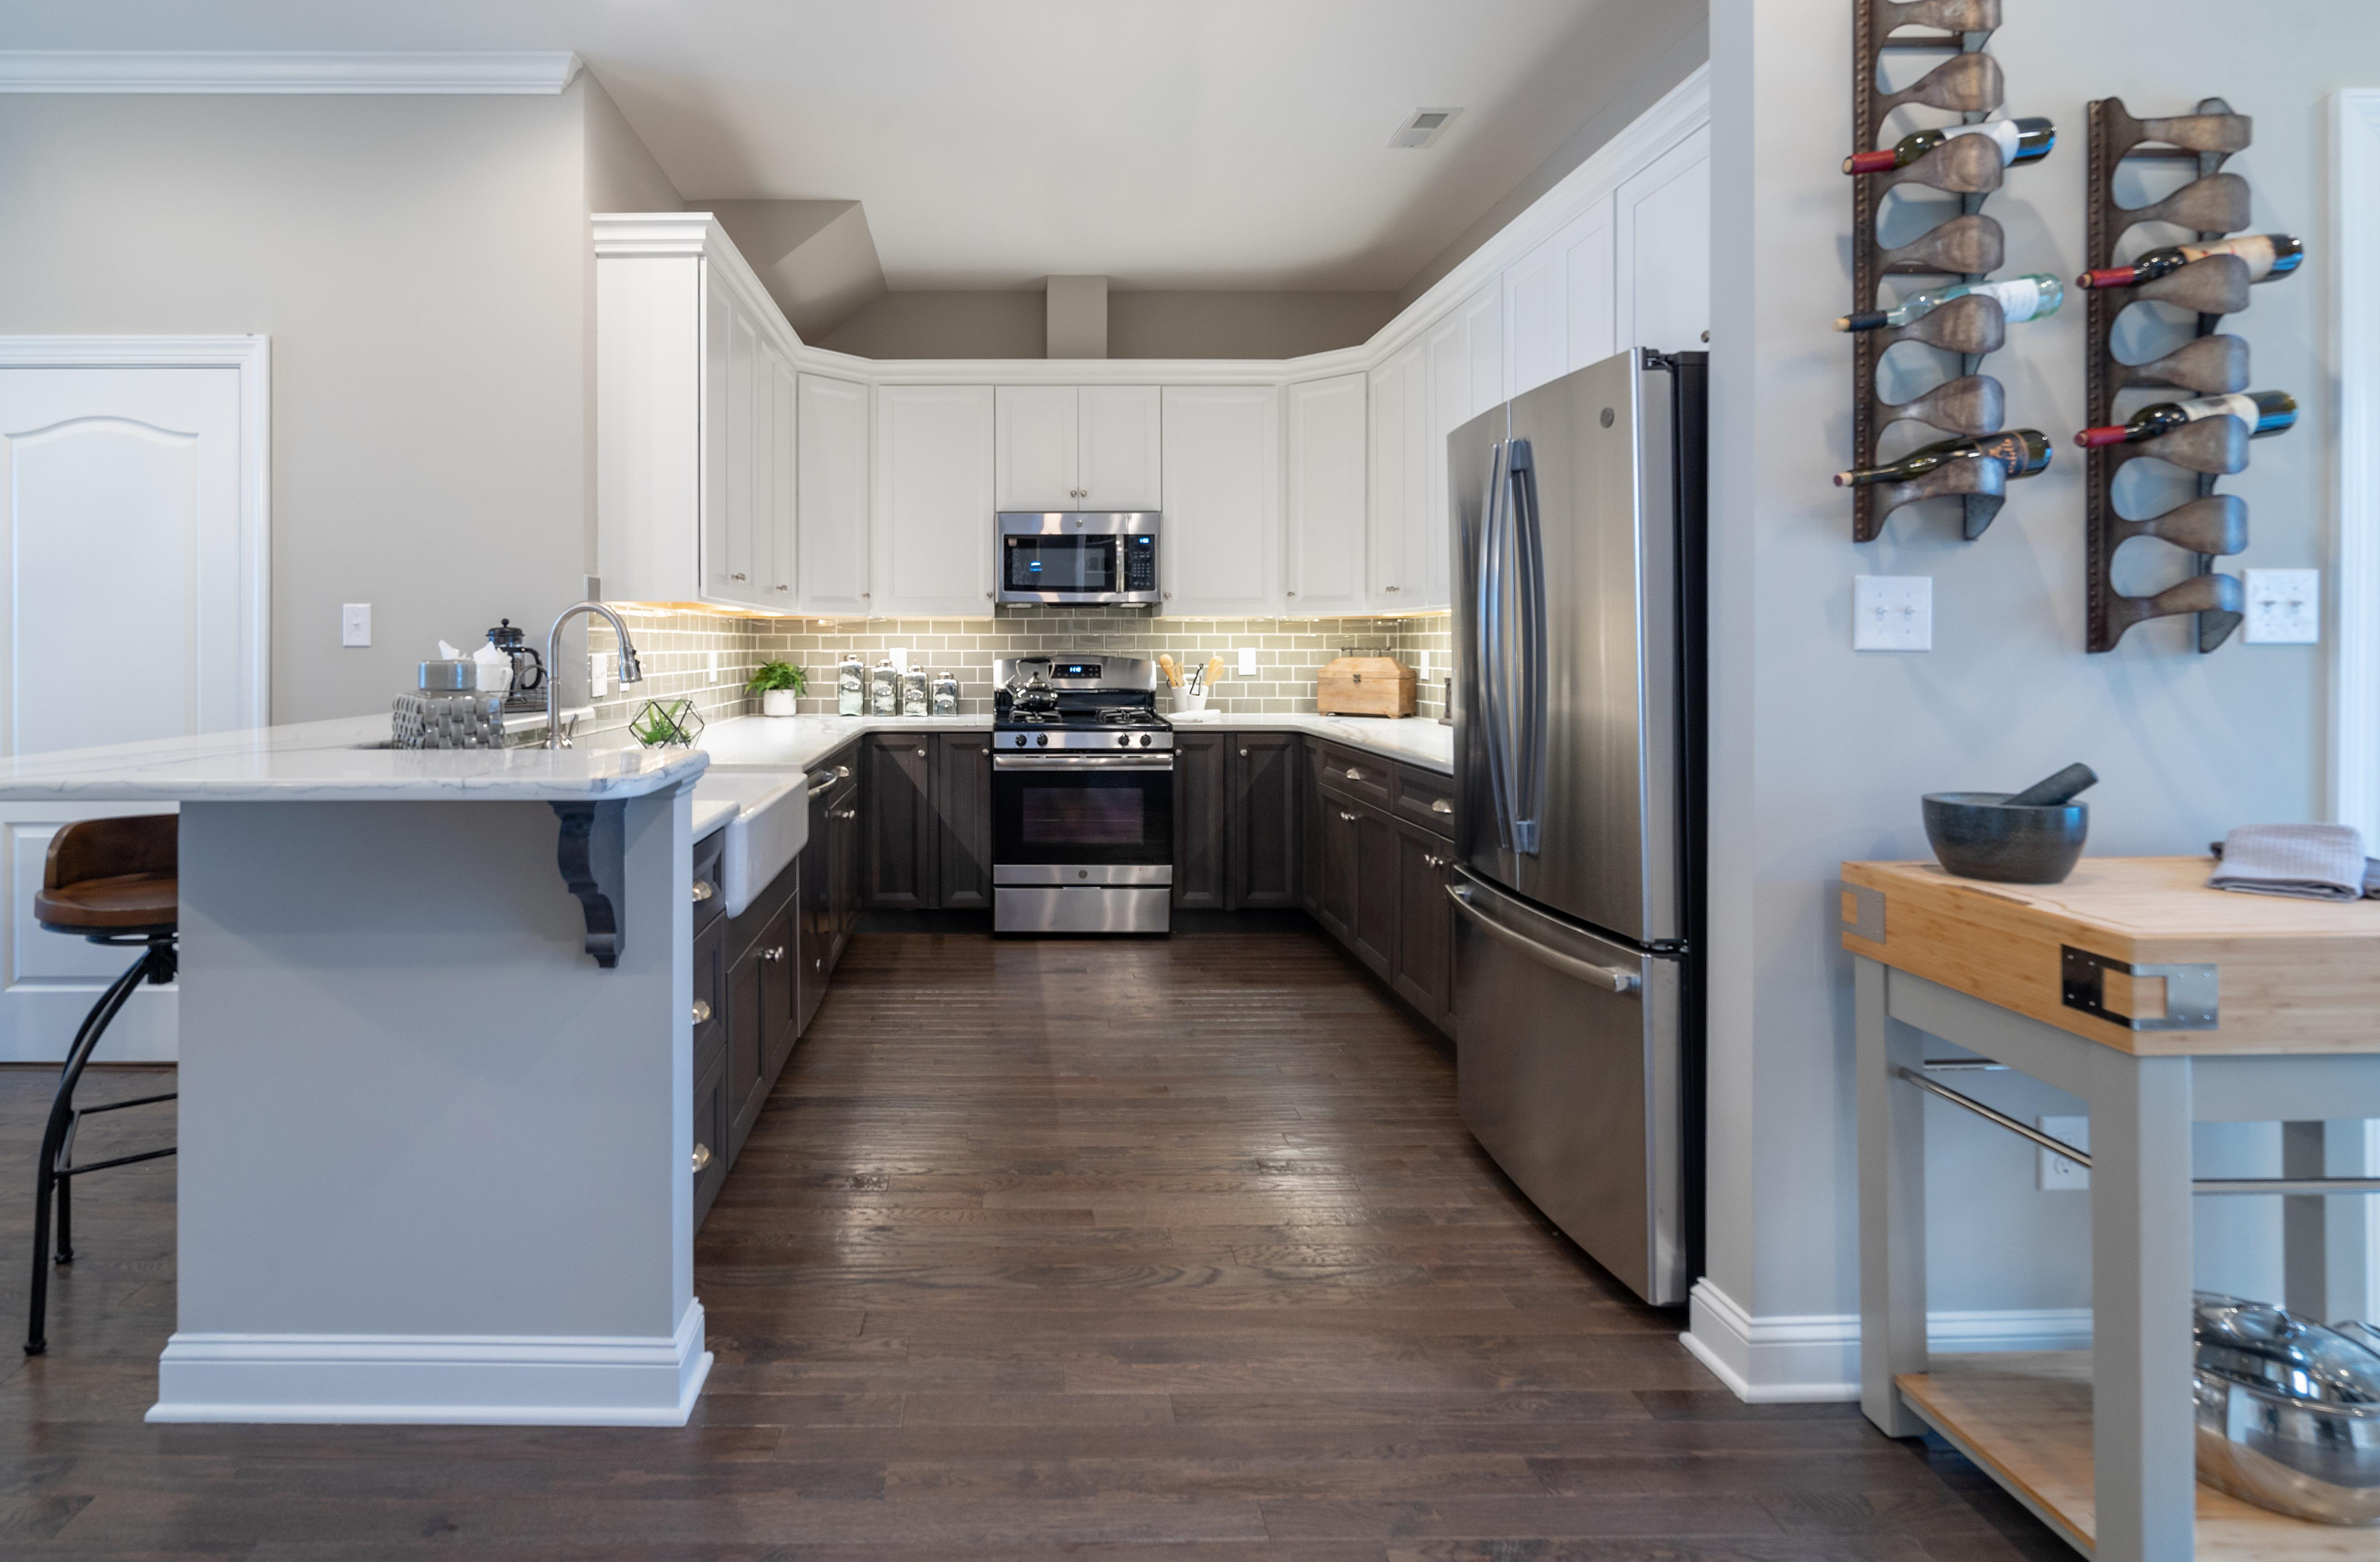 Kitchen featured in the Bella By Judd Builders and Developers in Philadelphia, PA